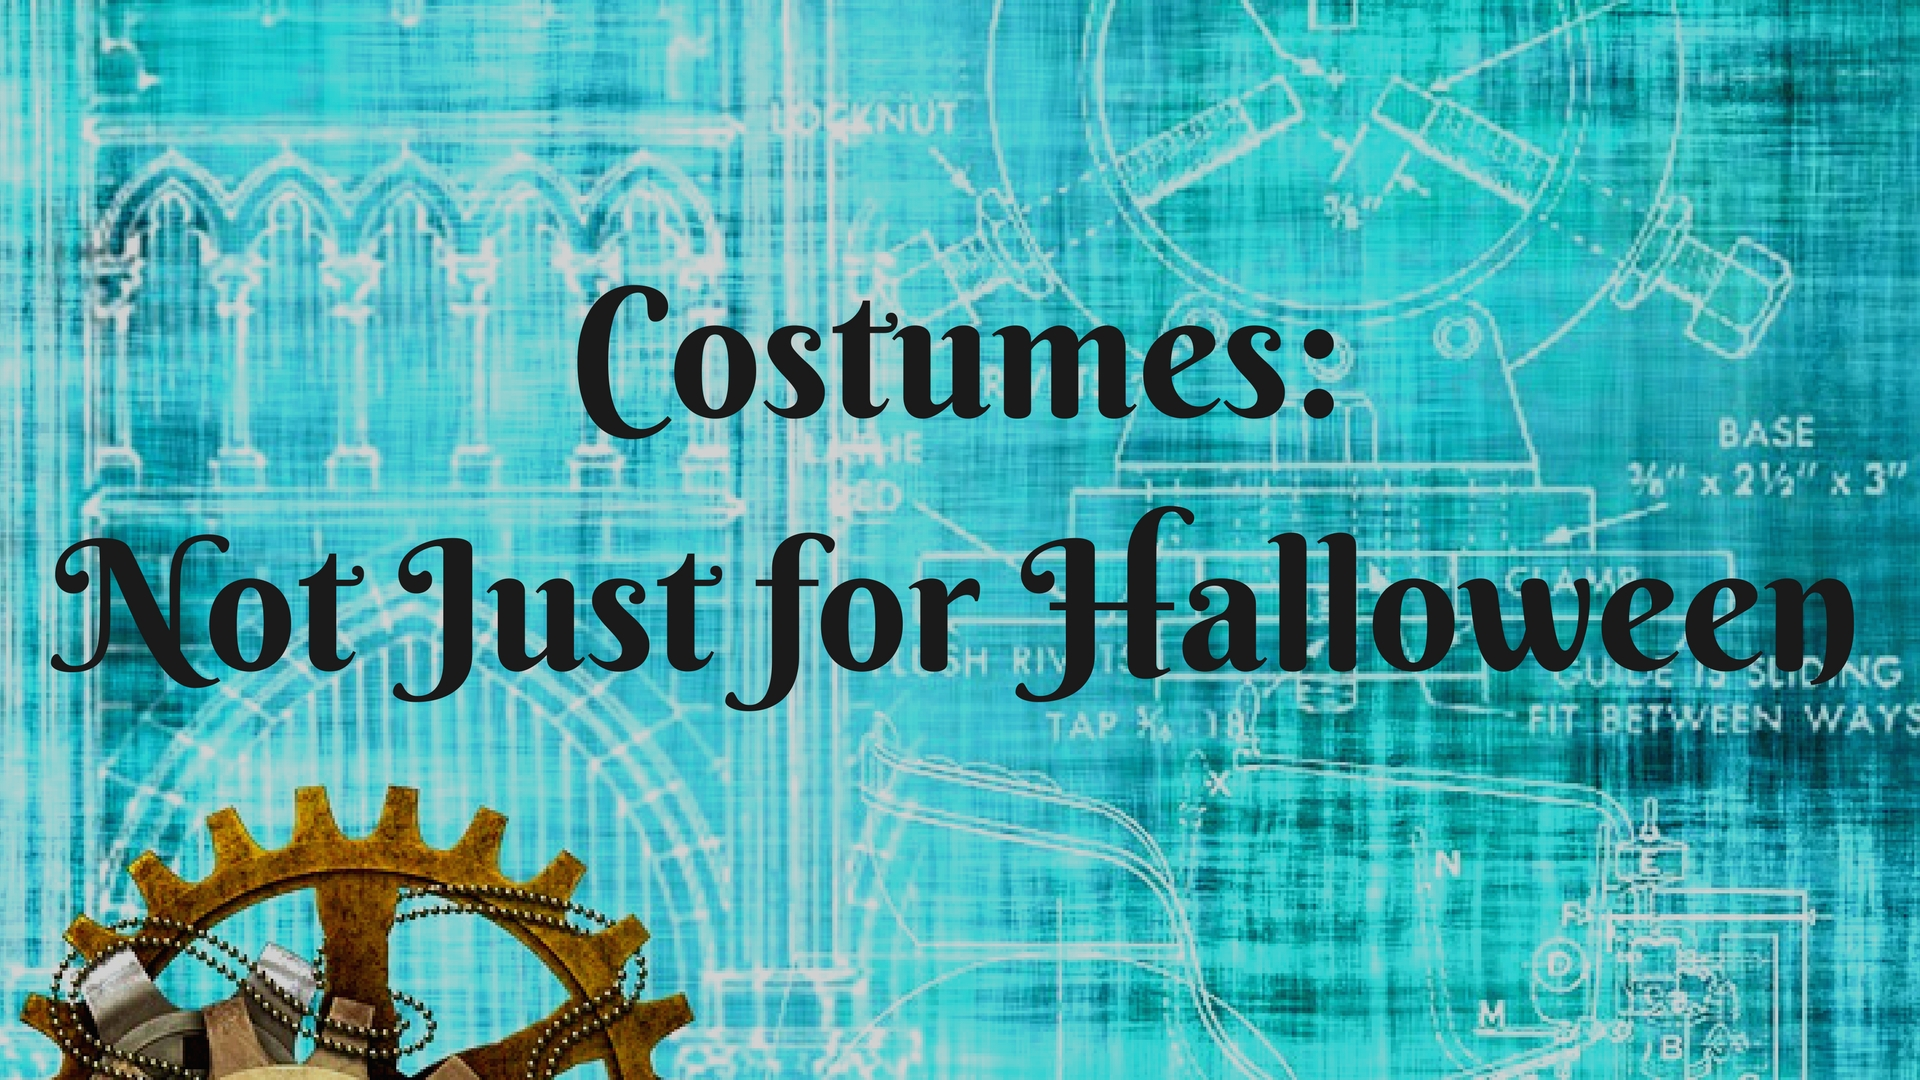 Costumes: Not Just for Halloween